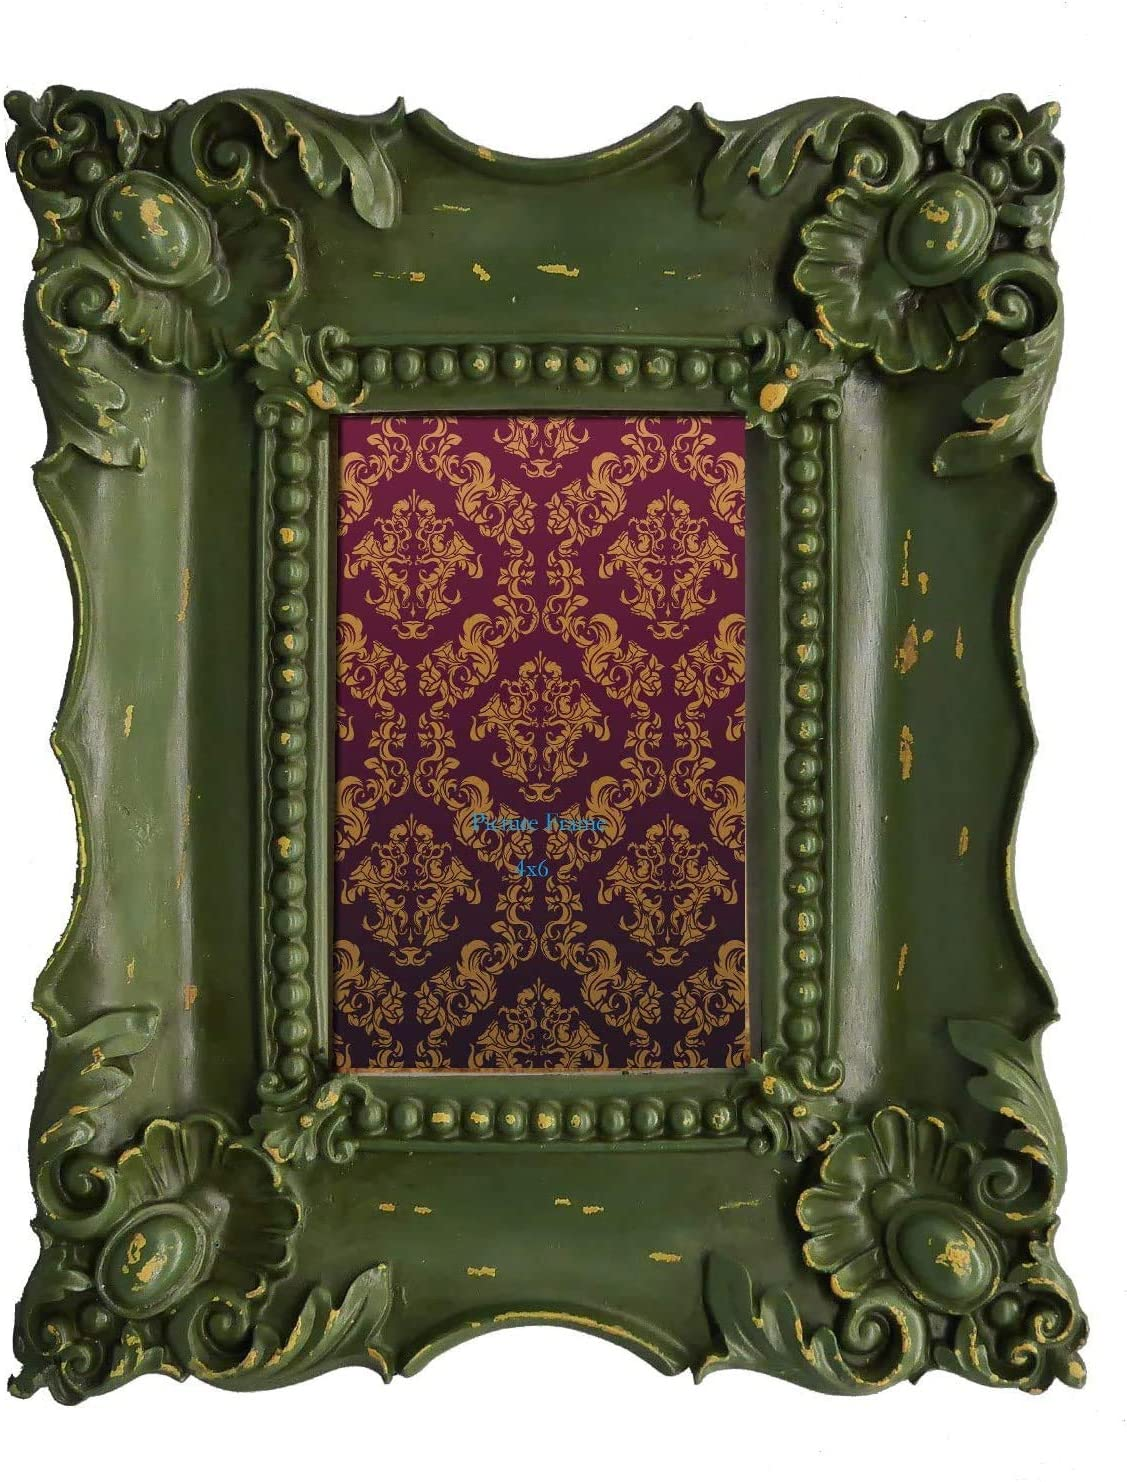 4x6 Picture Frame Baroque Picture Frames 4x6 Shabby Chic Photo Frames in Moss Green